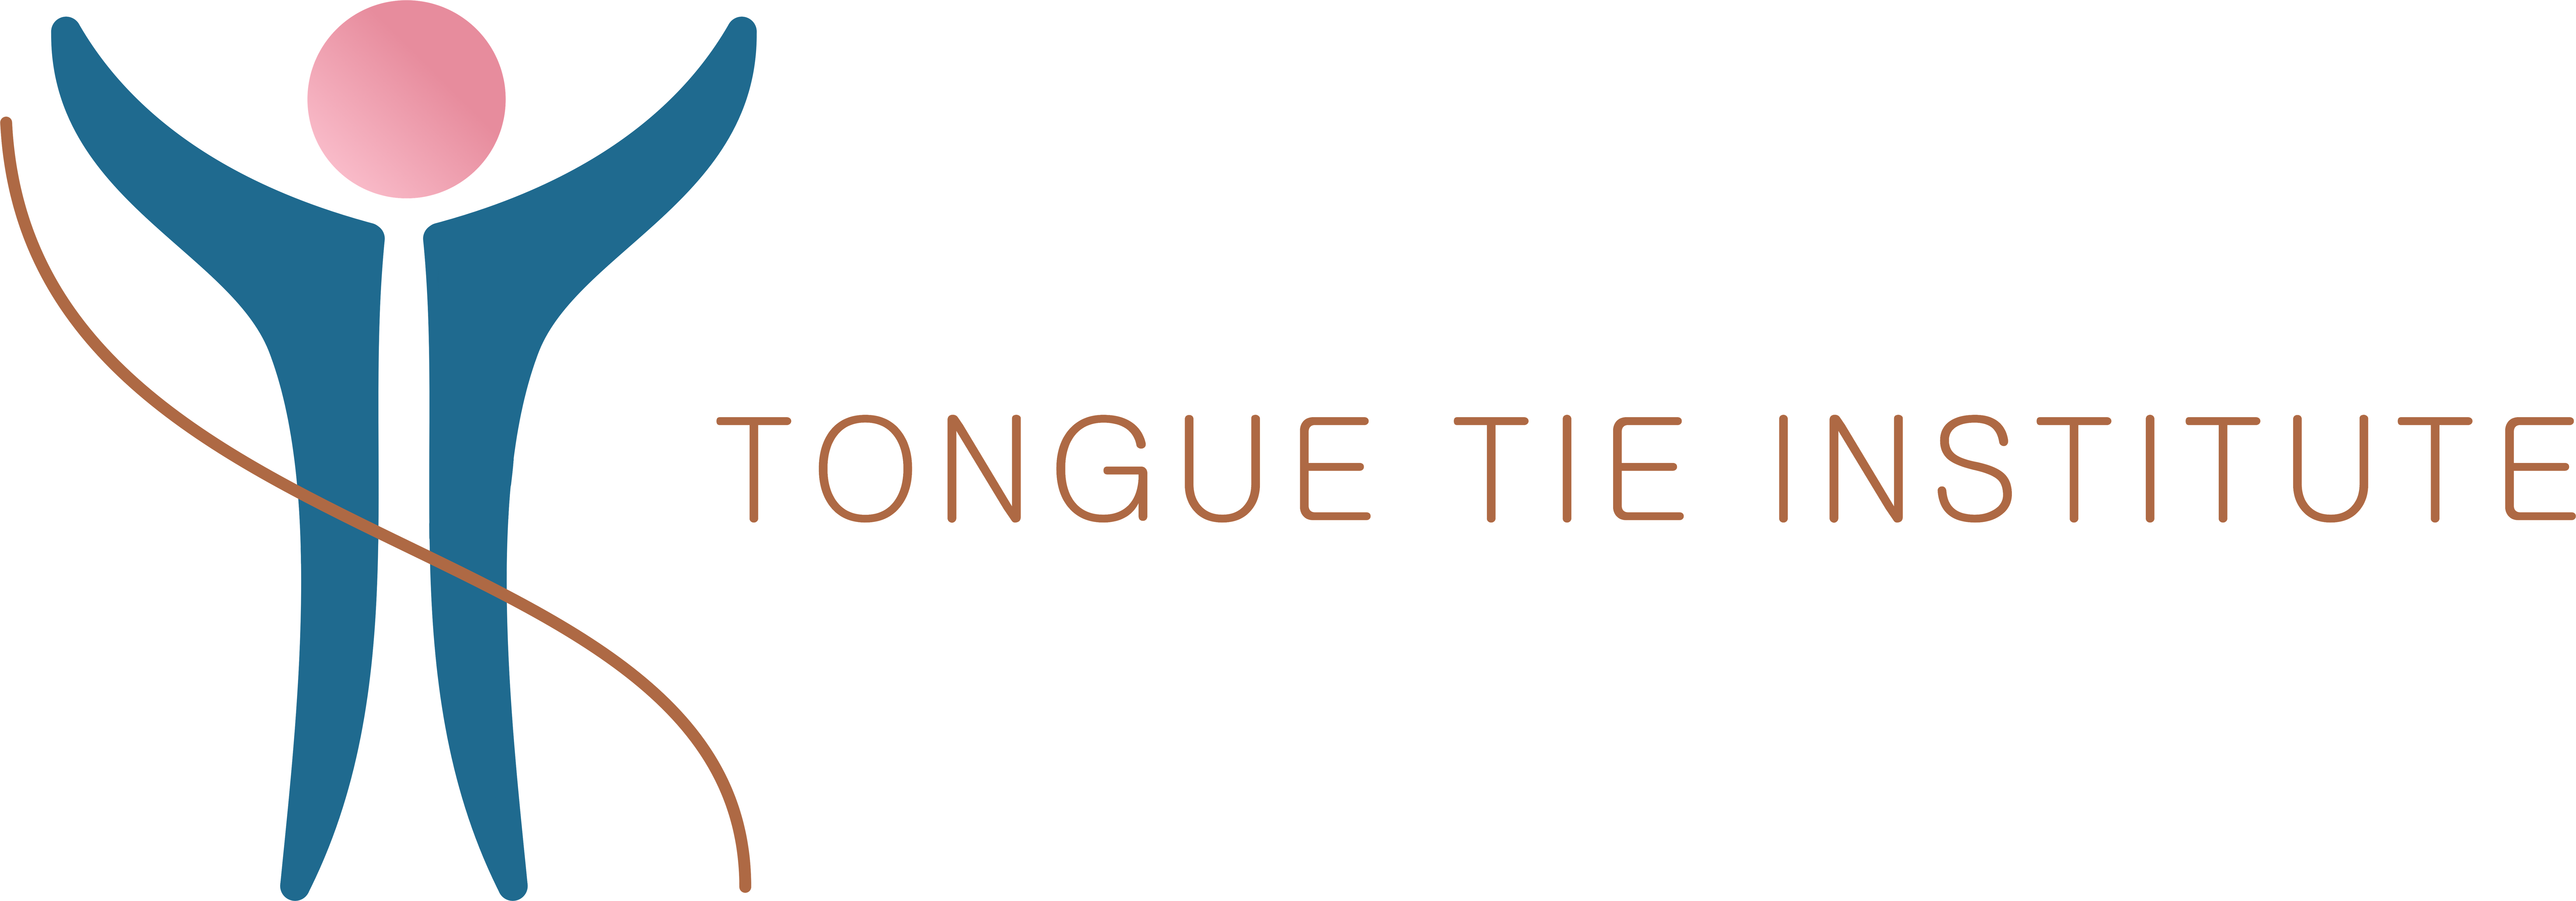 Tongue Tie Institute